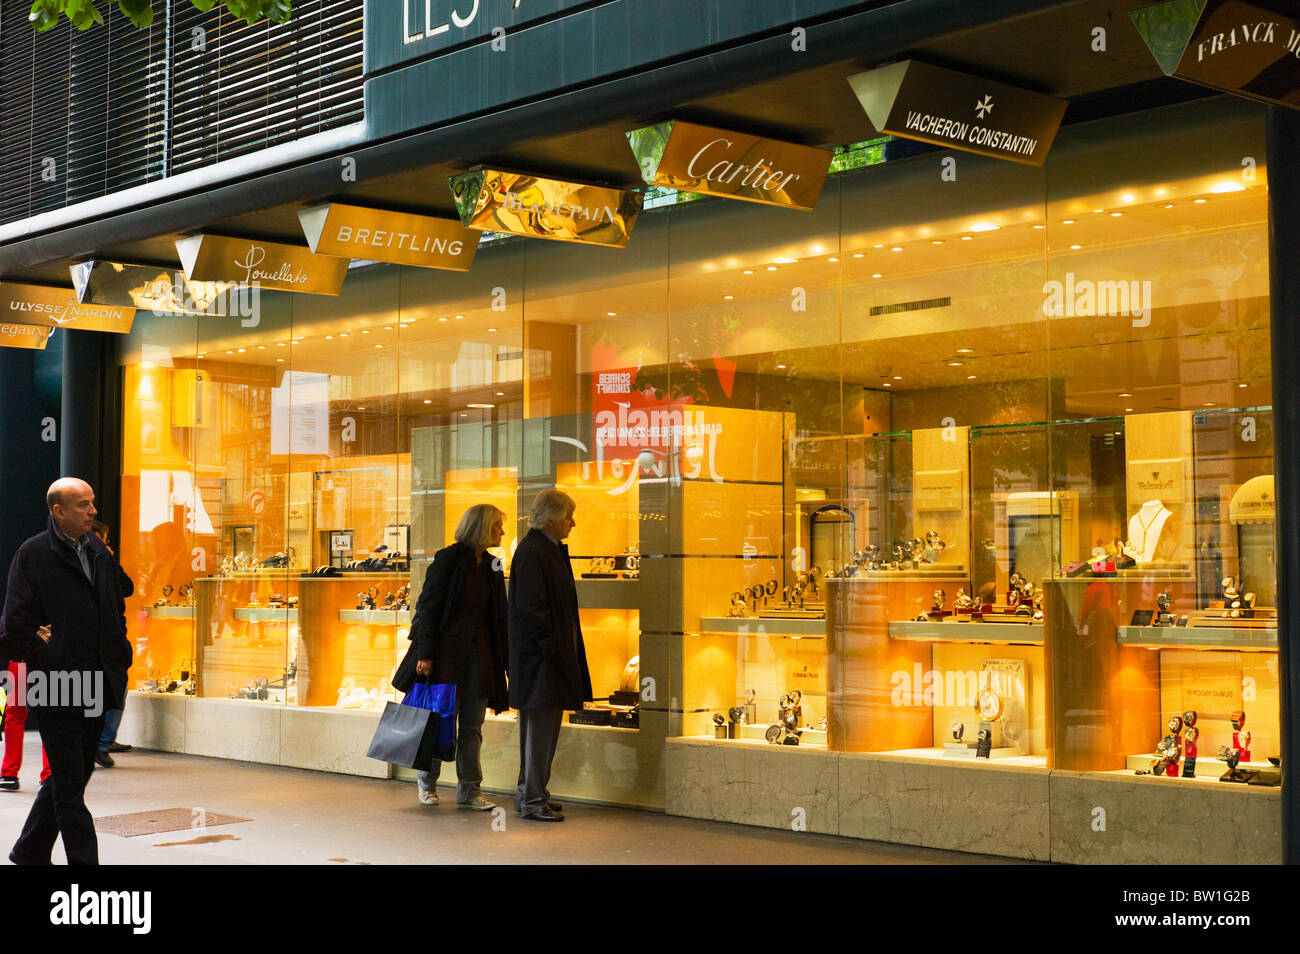 breitling outlet store avhz  PEOPLE SHOPPING FOR LUXURY WATCHES BAHNHOFSTRASSE STREET Z脺RICH SWITZERLAND